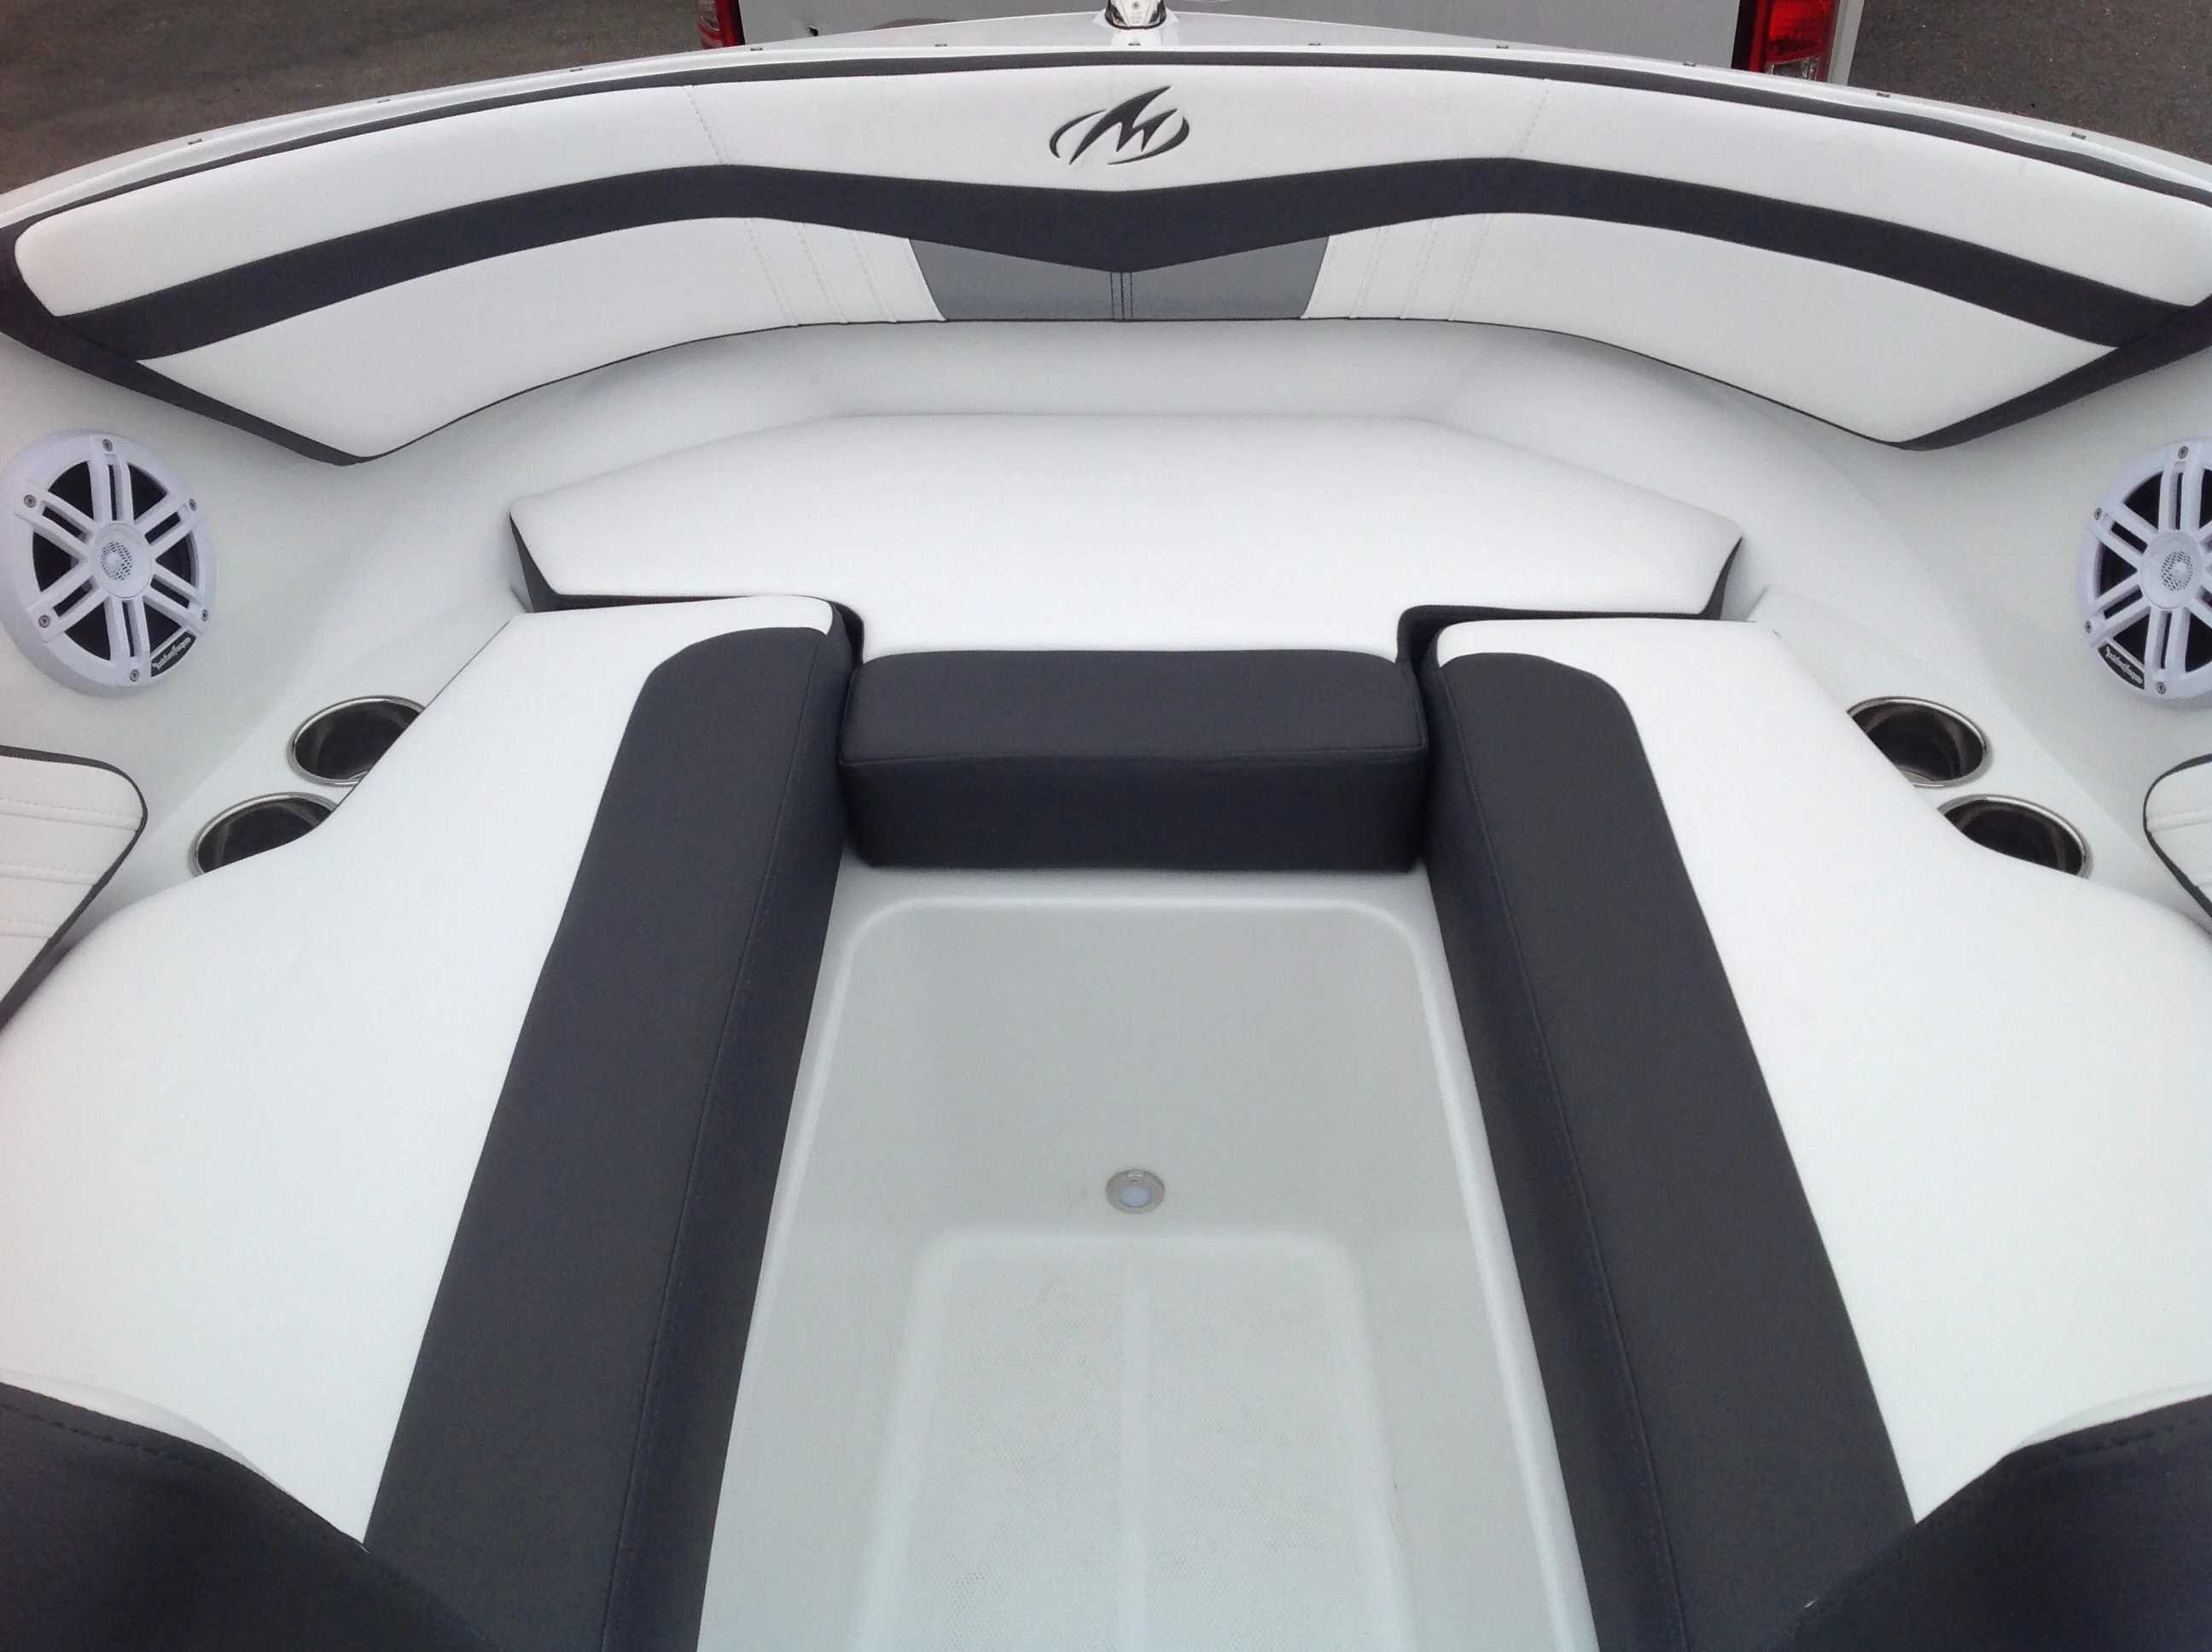 2021 Monterey boat for sale, model of the boat is M20 & Image # 3 of 13